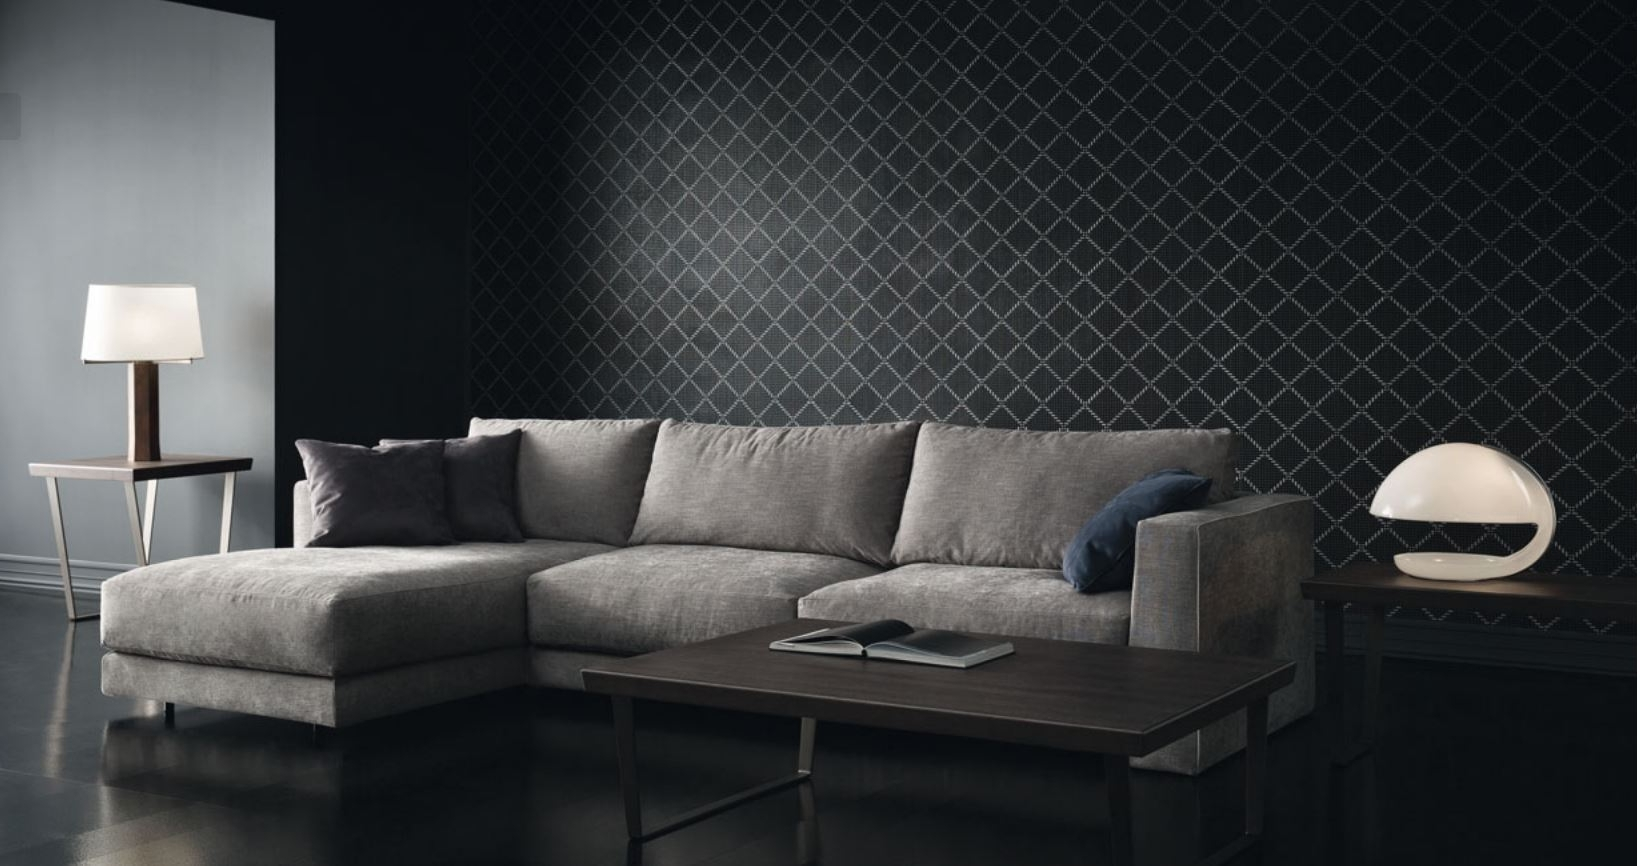 Latest Down Feather Sectional Sofas In Modern Sofas,modern Furniture,design Sofas – Sectional Modern Sofa (View 18 of 20)